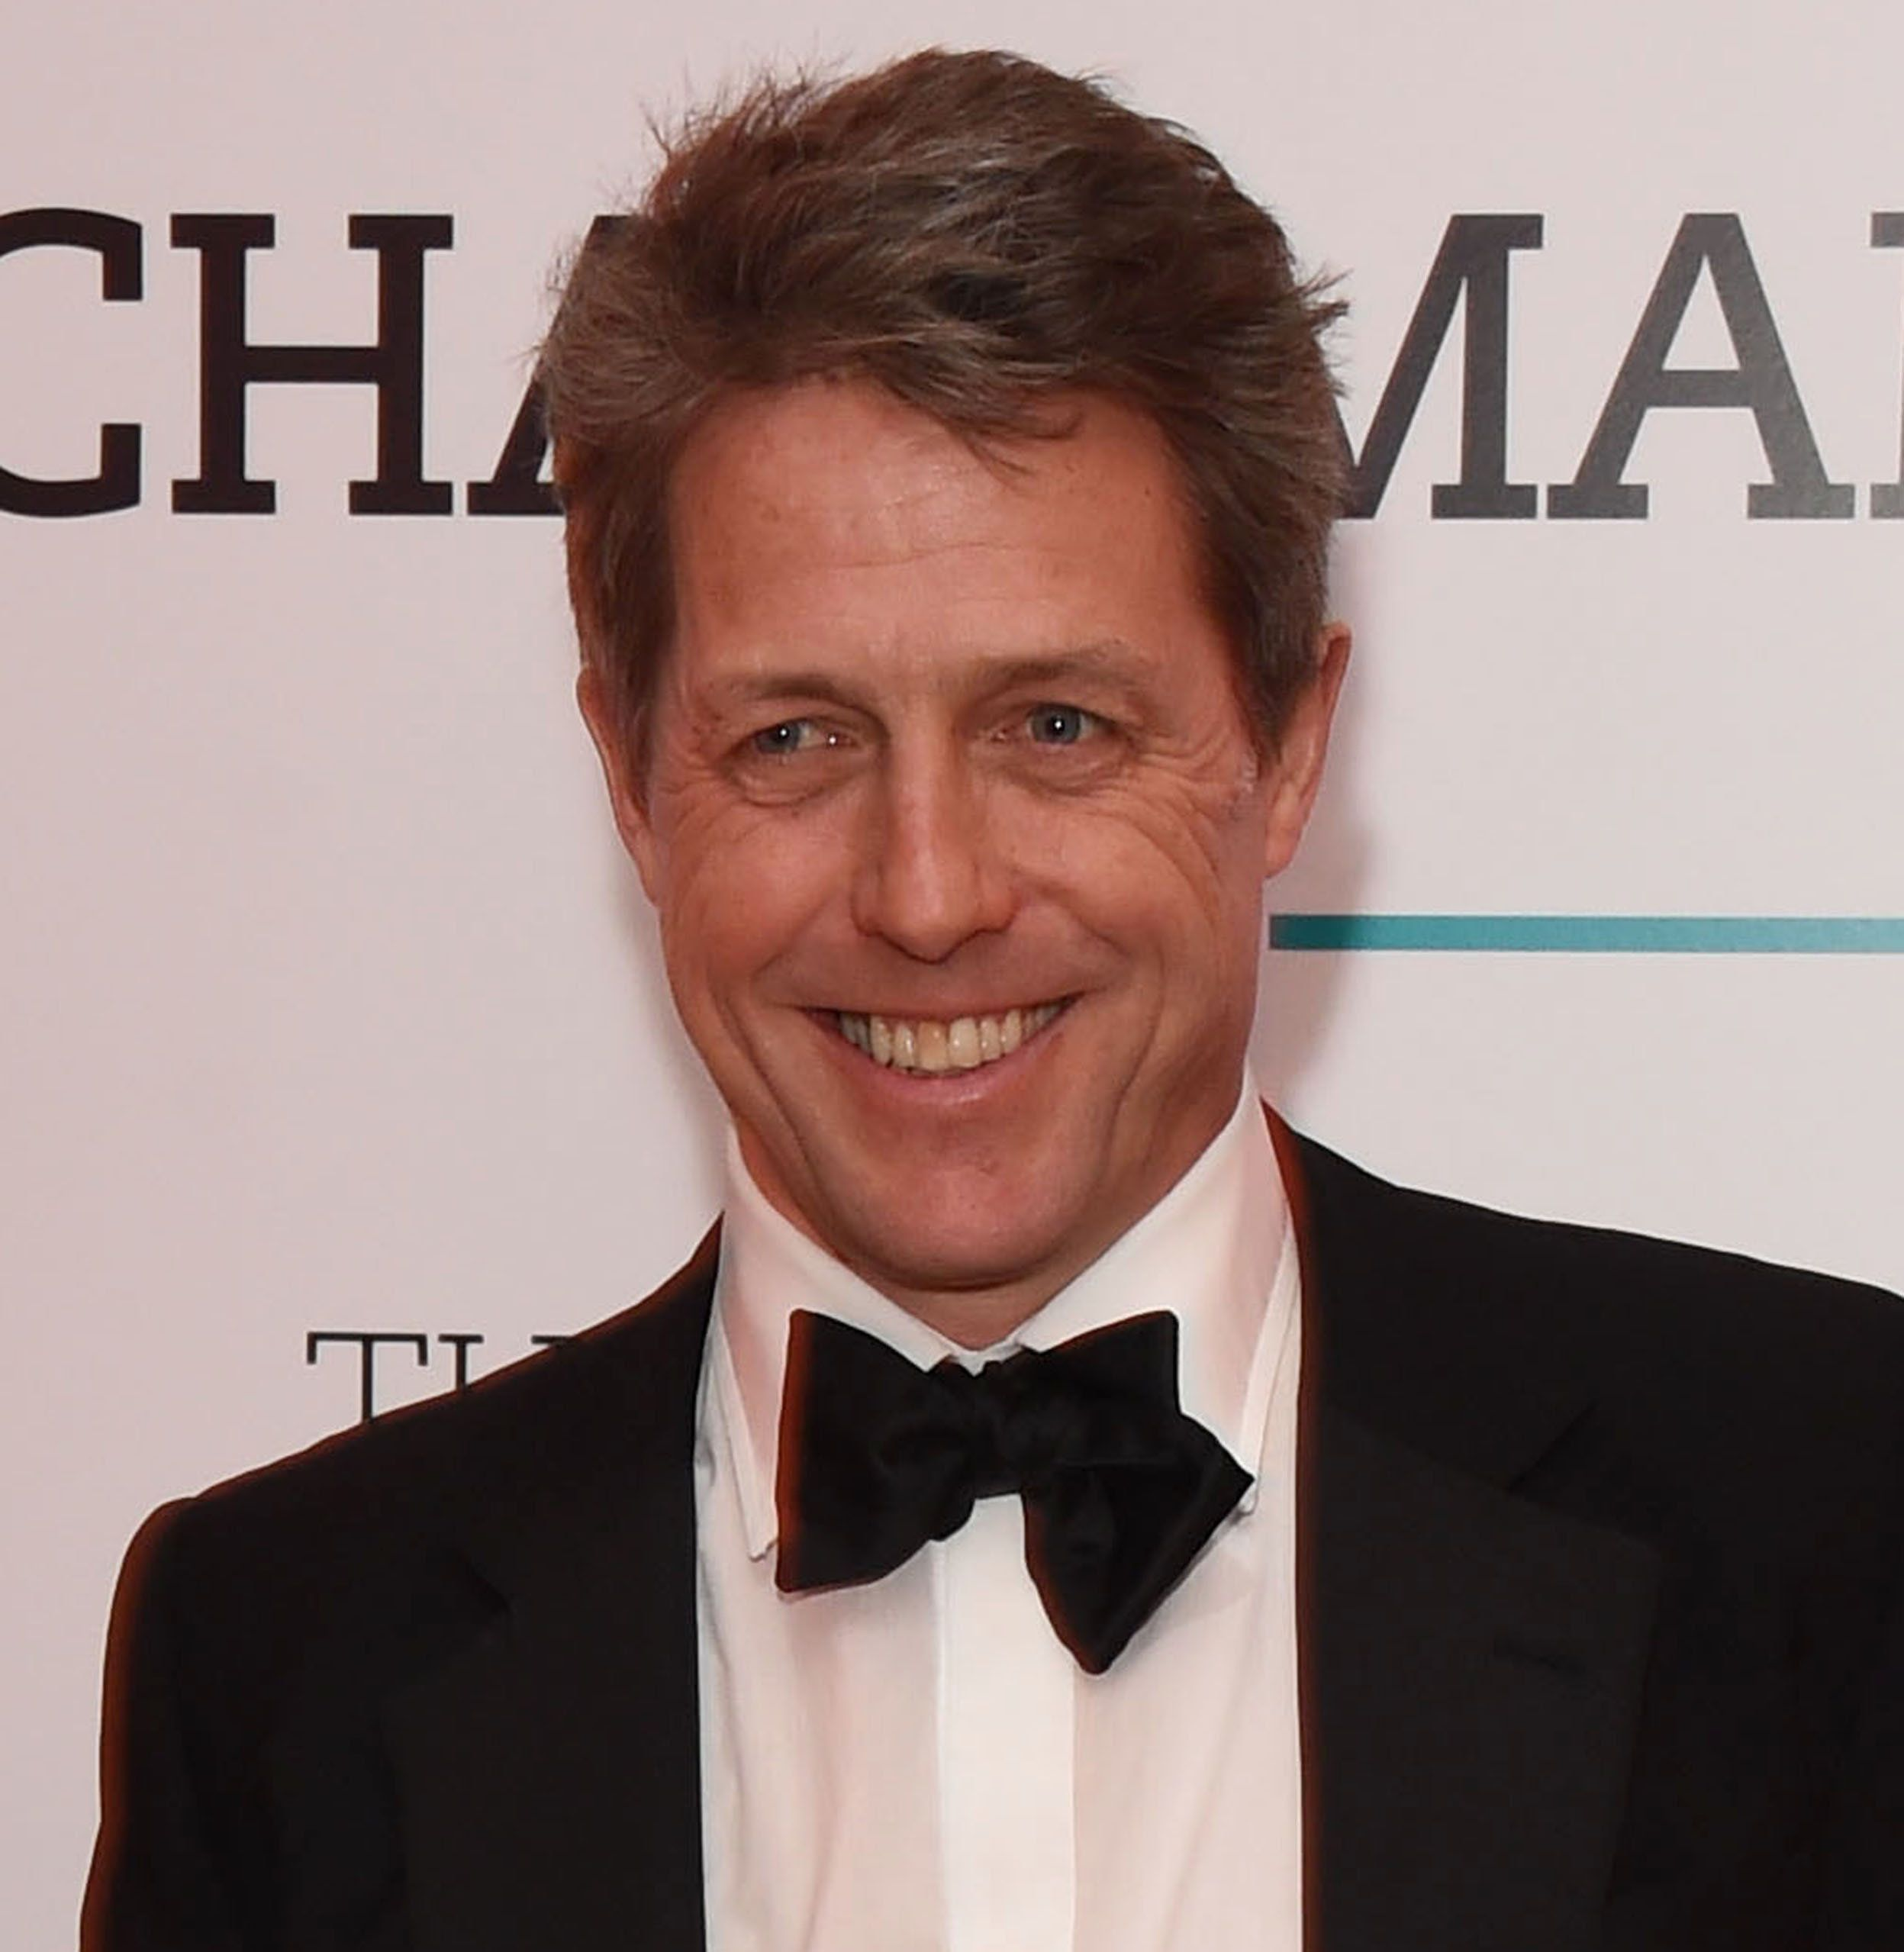 LONDON, ENGLAND - FEBRUARY 23:  Hugh Grant attends the BFI Chairman's Dinner, where he was awarded with his BFI Fellowship, at The Corinthia Hotel on February 23, 2016 in London, England.  (Photo by David M. Benett/Dave Benett/Getty Images)